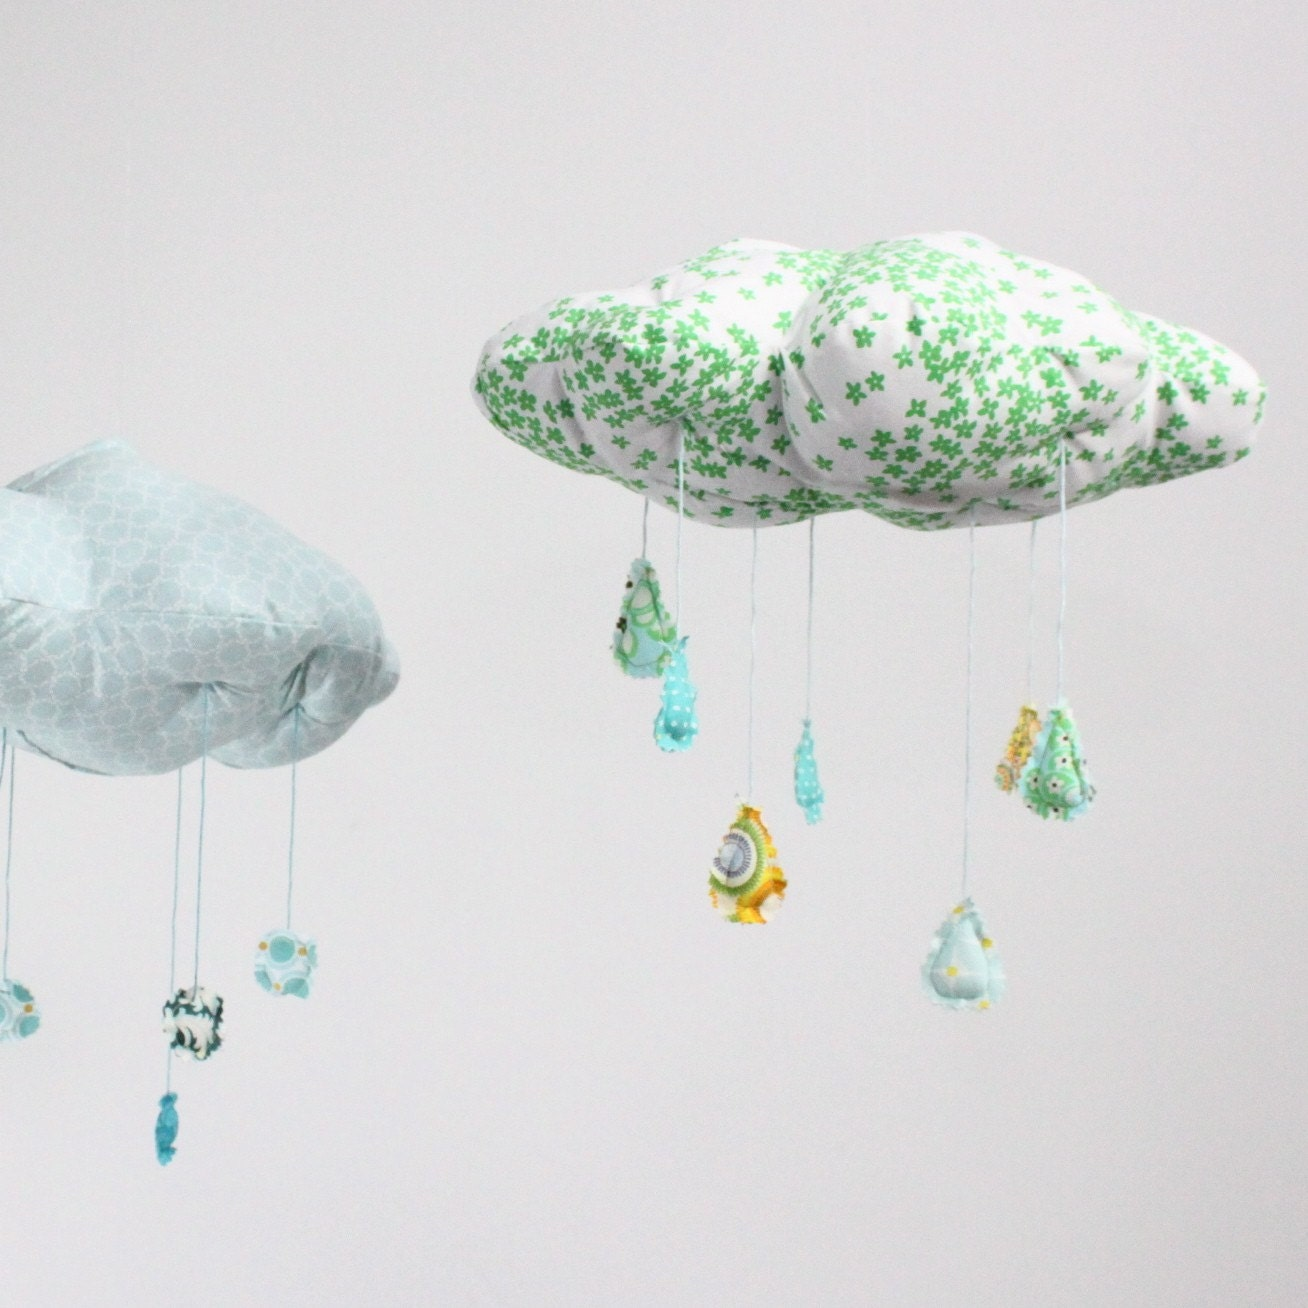 "Lucky Little Cloud Mobile - ""Raindrops keep falling on my head"" fabric sculpture in kelly emerald green, turquoise, tiffany blue, golden yellow, and snow white"